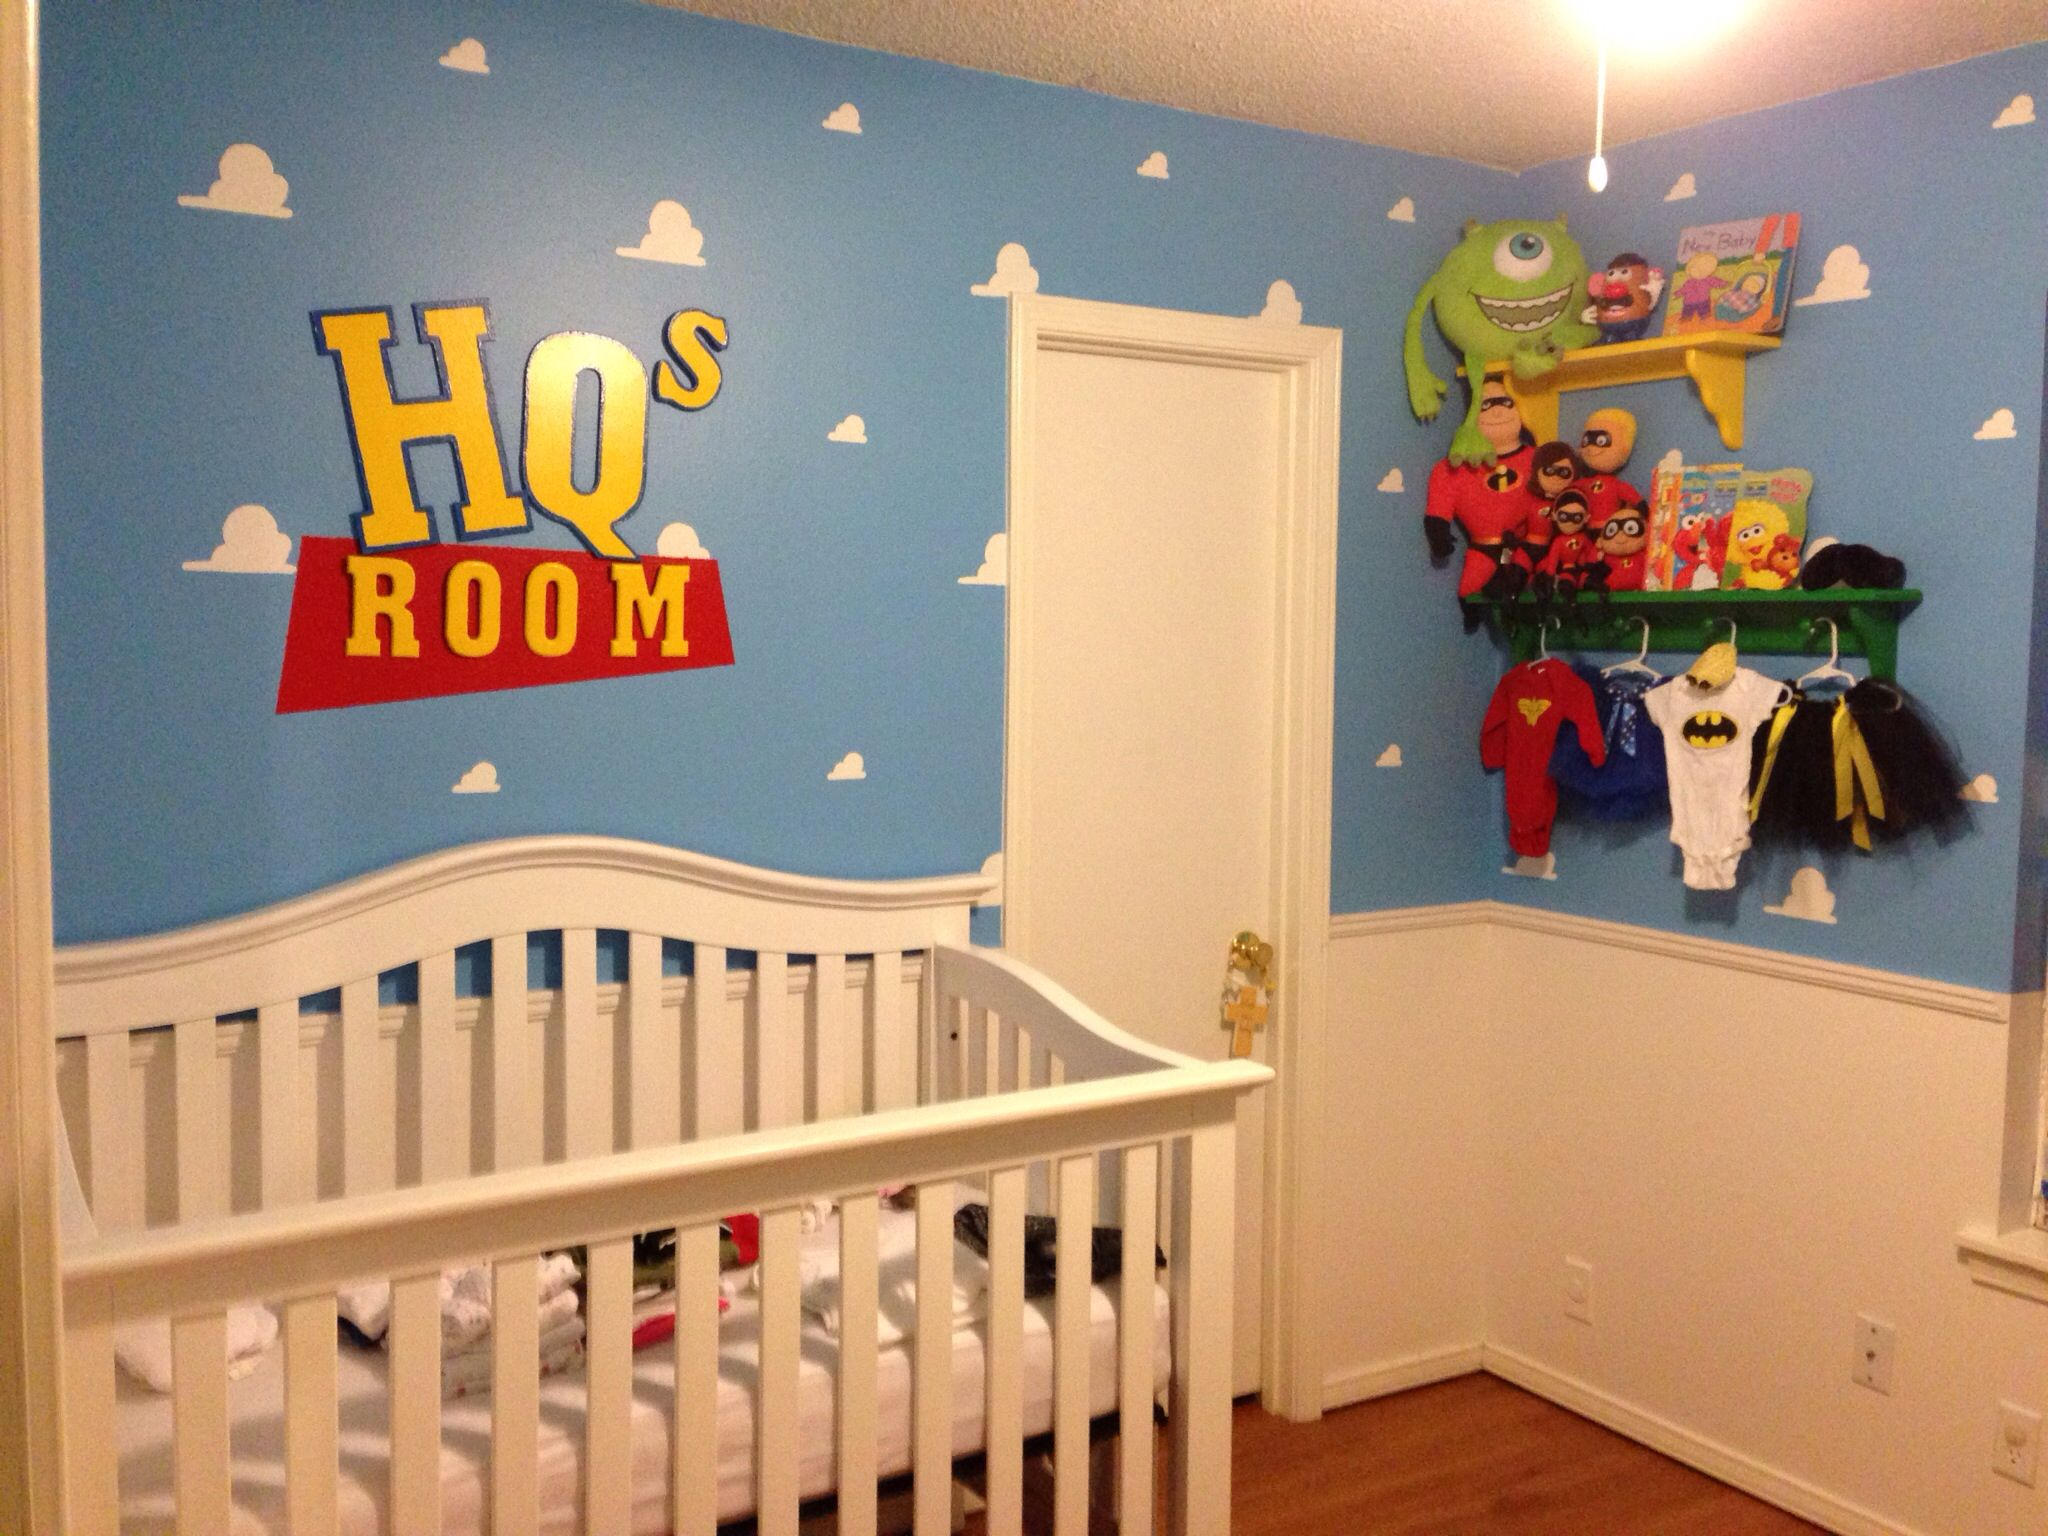 25 best ideas about toy story nursery on pinterest toy story room toy story bedroom and toy story clouds - Baby Themed Rooms